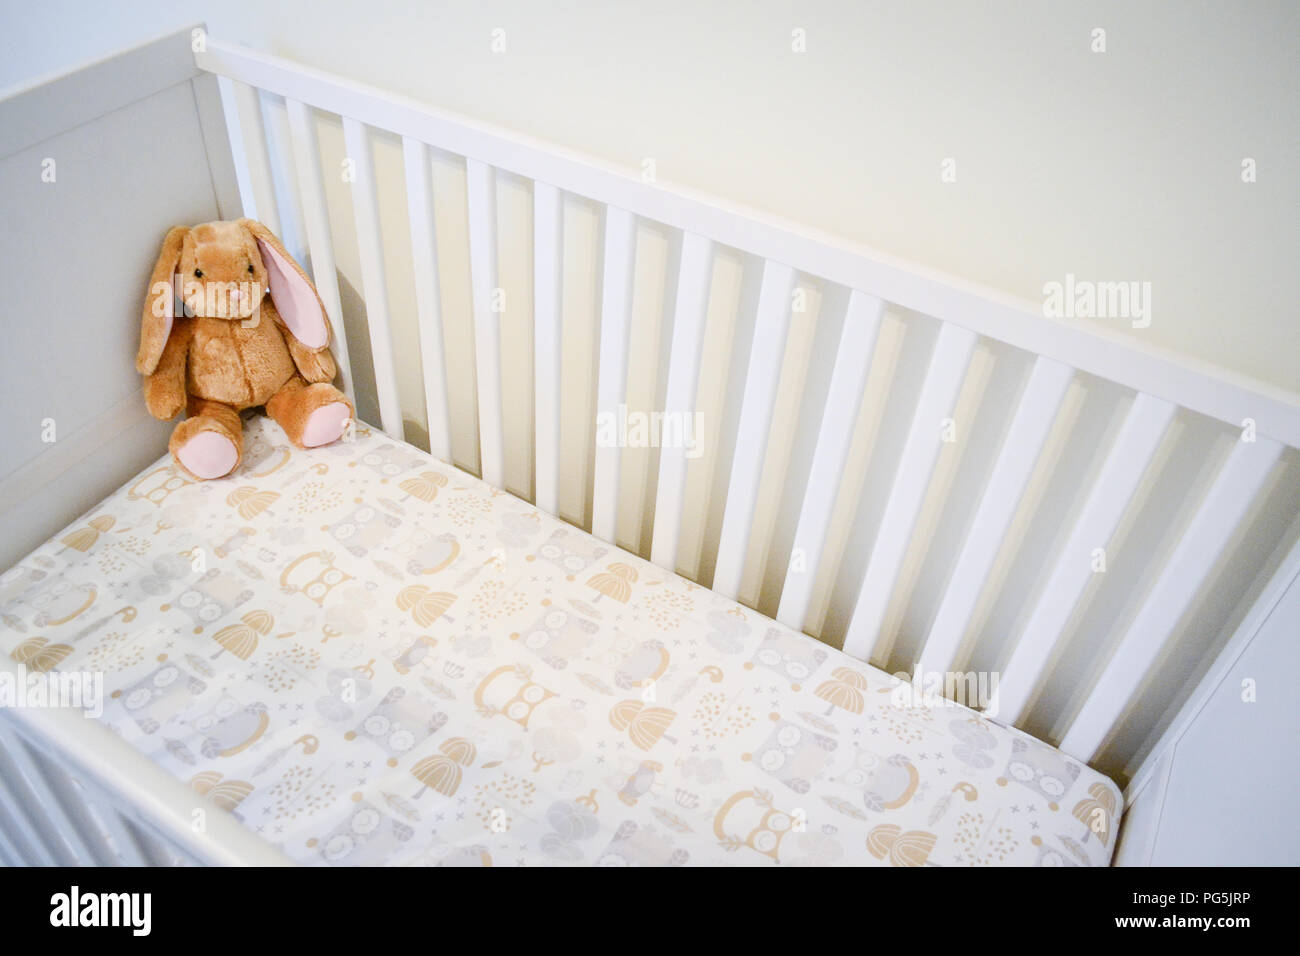 Culle Ikea Foto Ikea Baby Immagini And Ikea Baby Fotos Stock Alamy